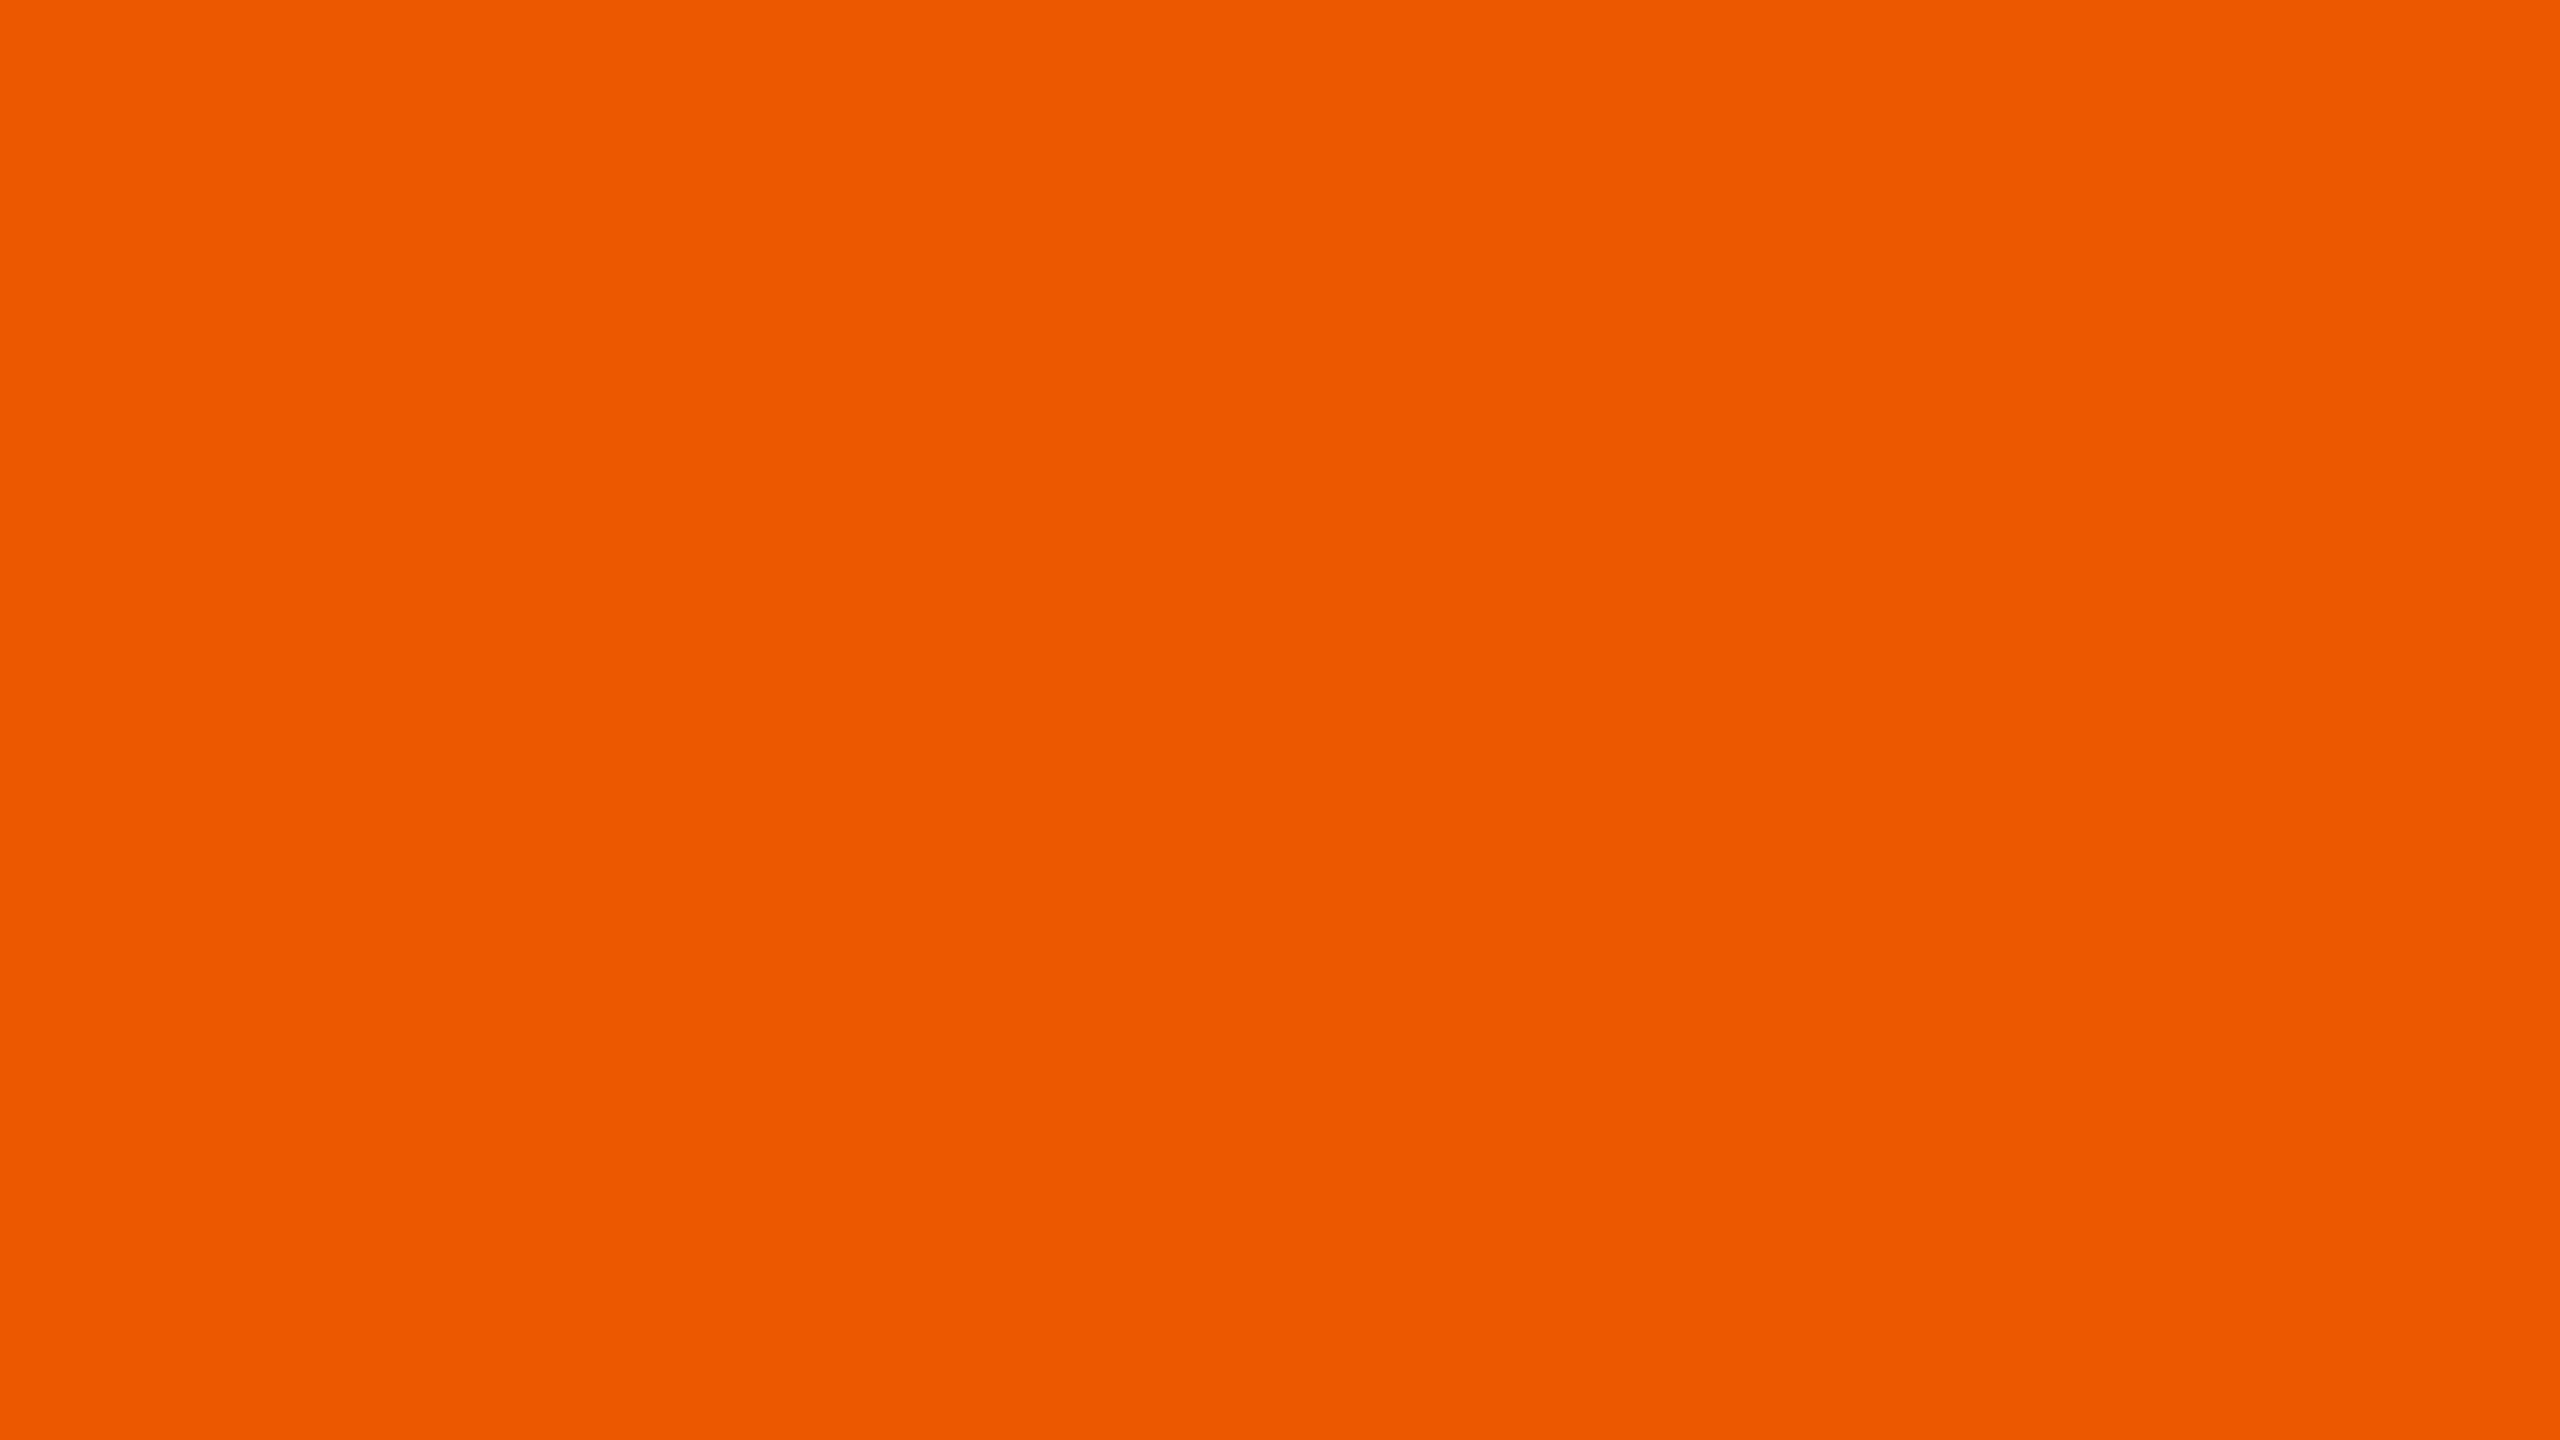 2560x1440 Persimmon Solid Color Background